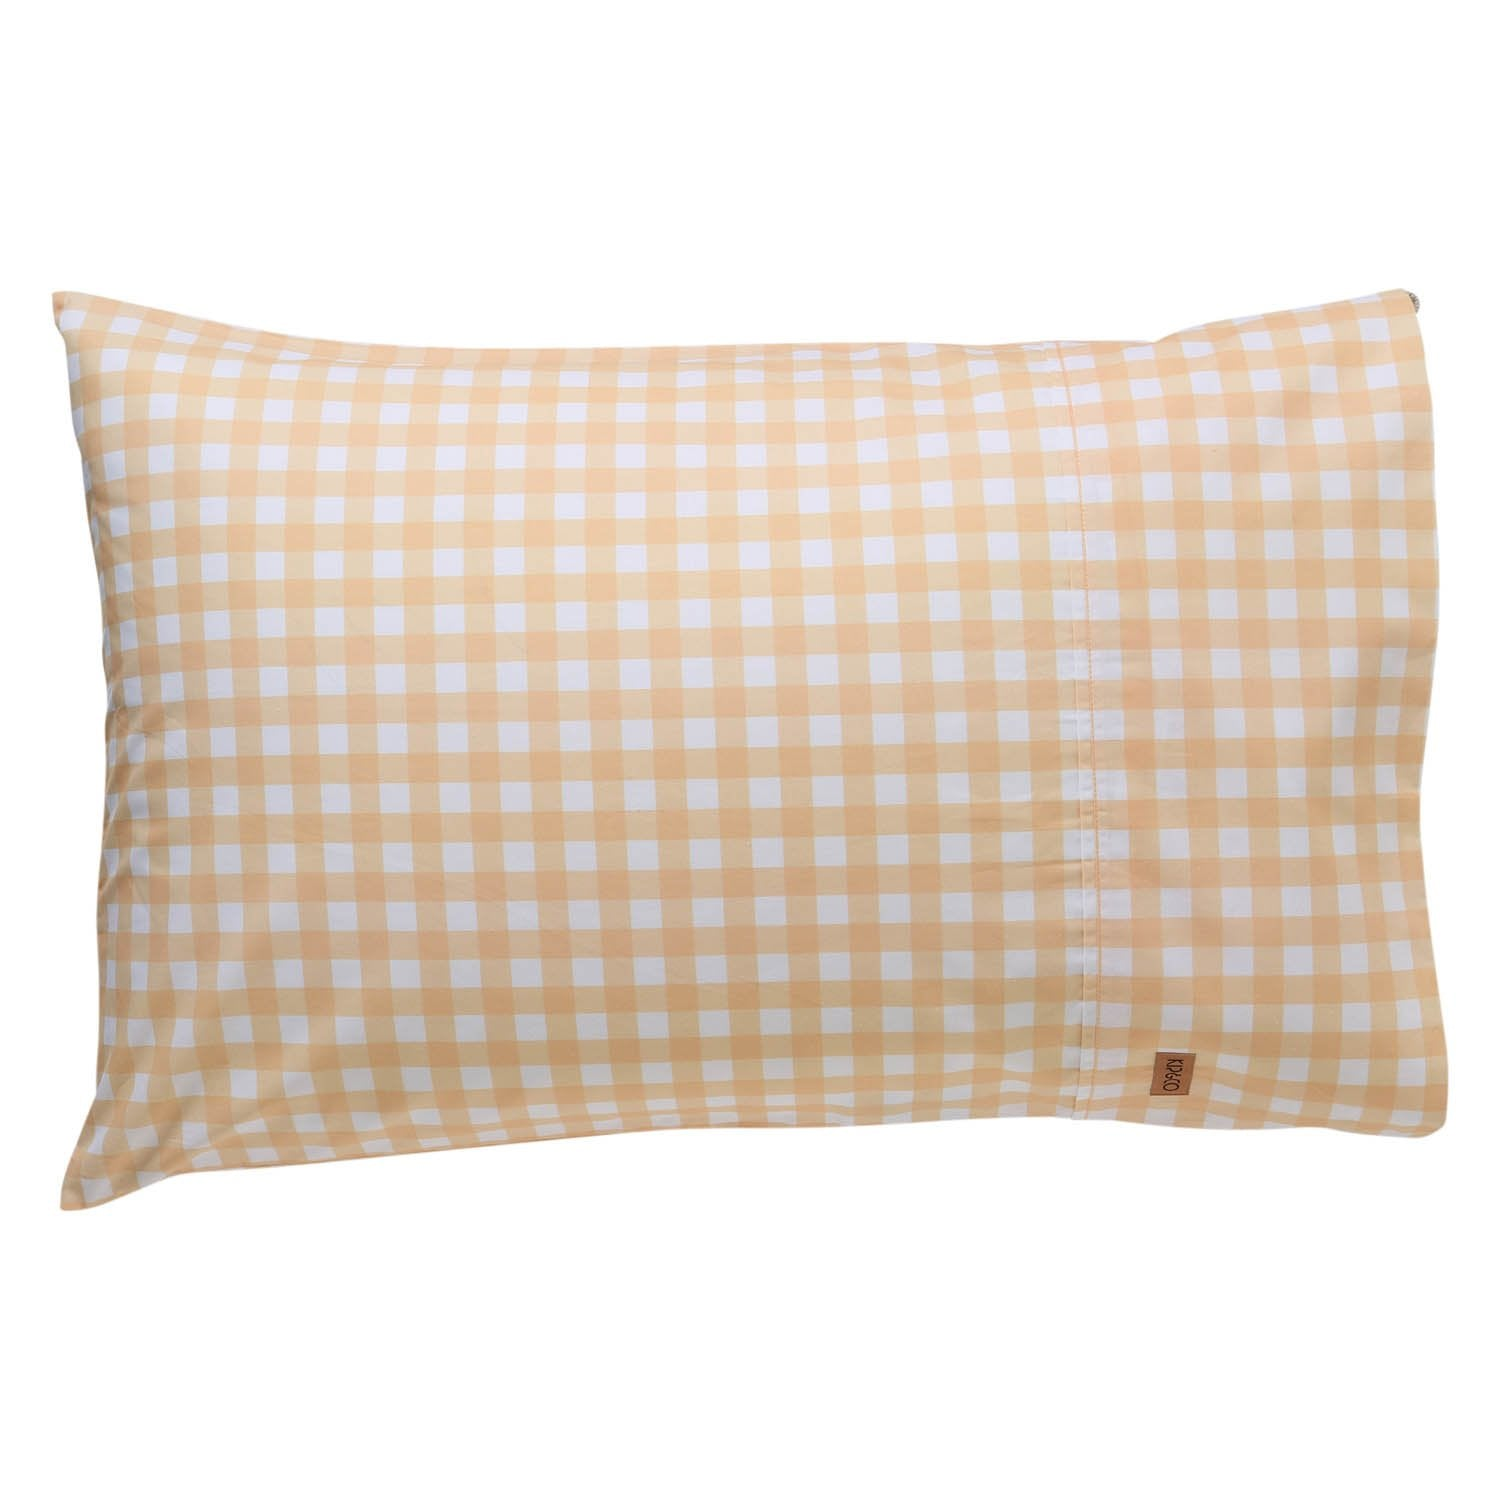 Pillowcase : Gingham